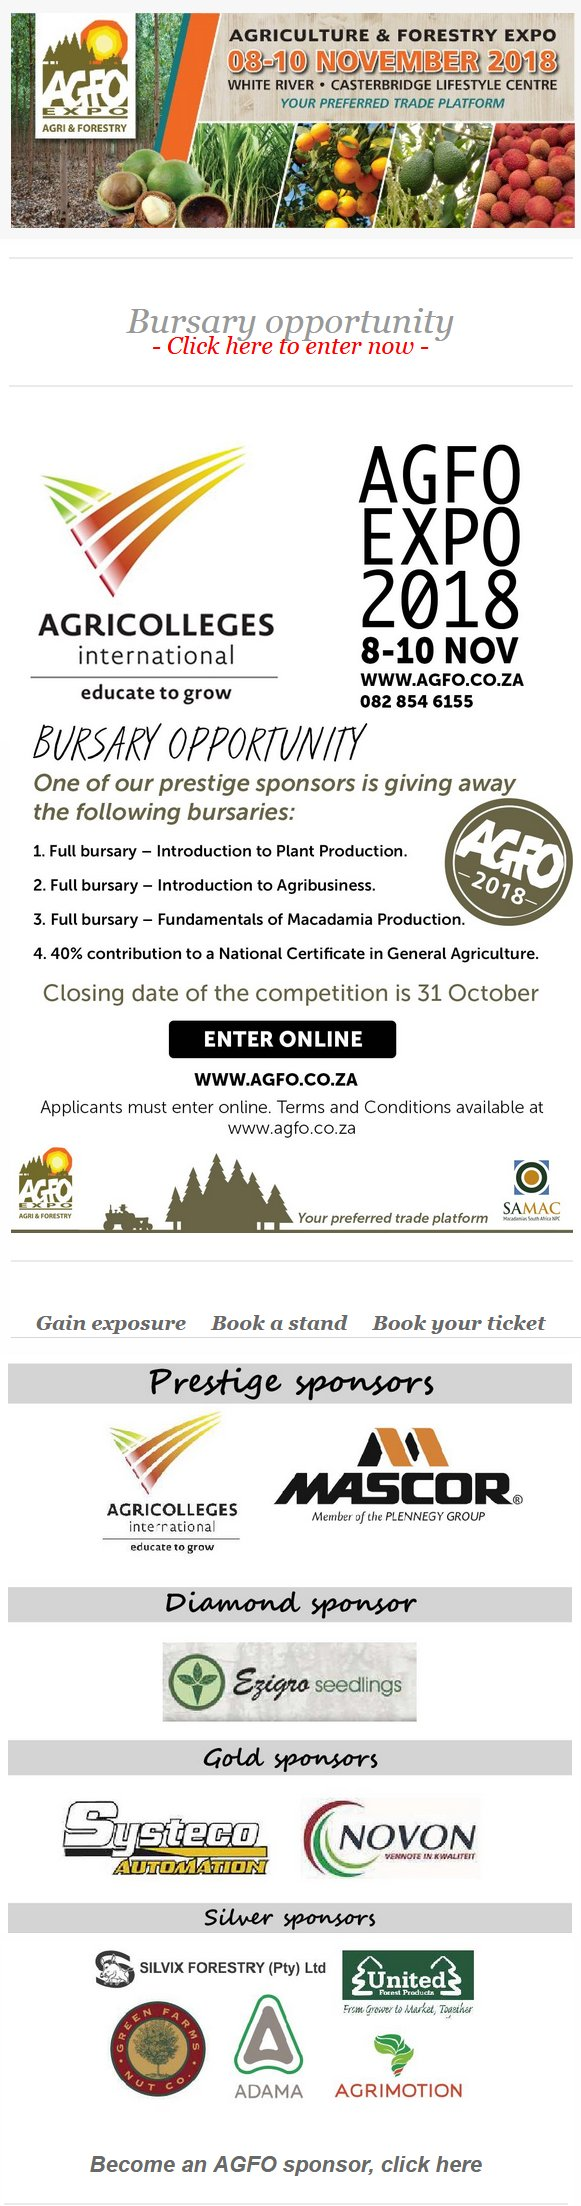 Agriculture & Forestry Expo Bursary Opportunity